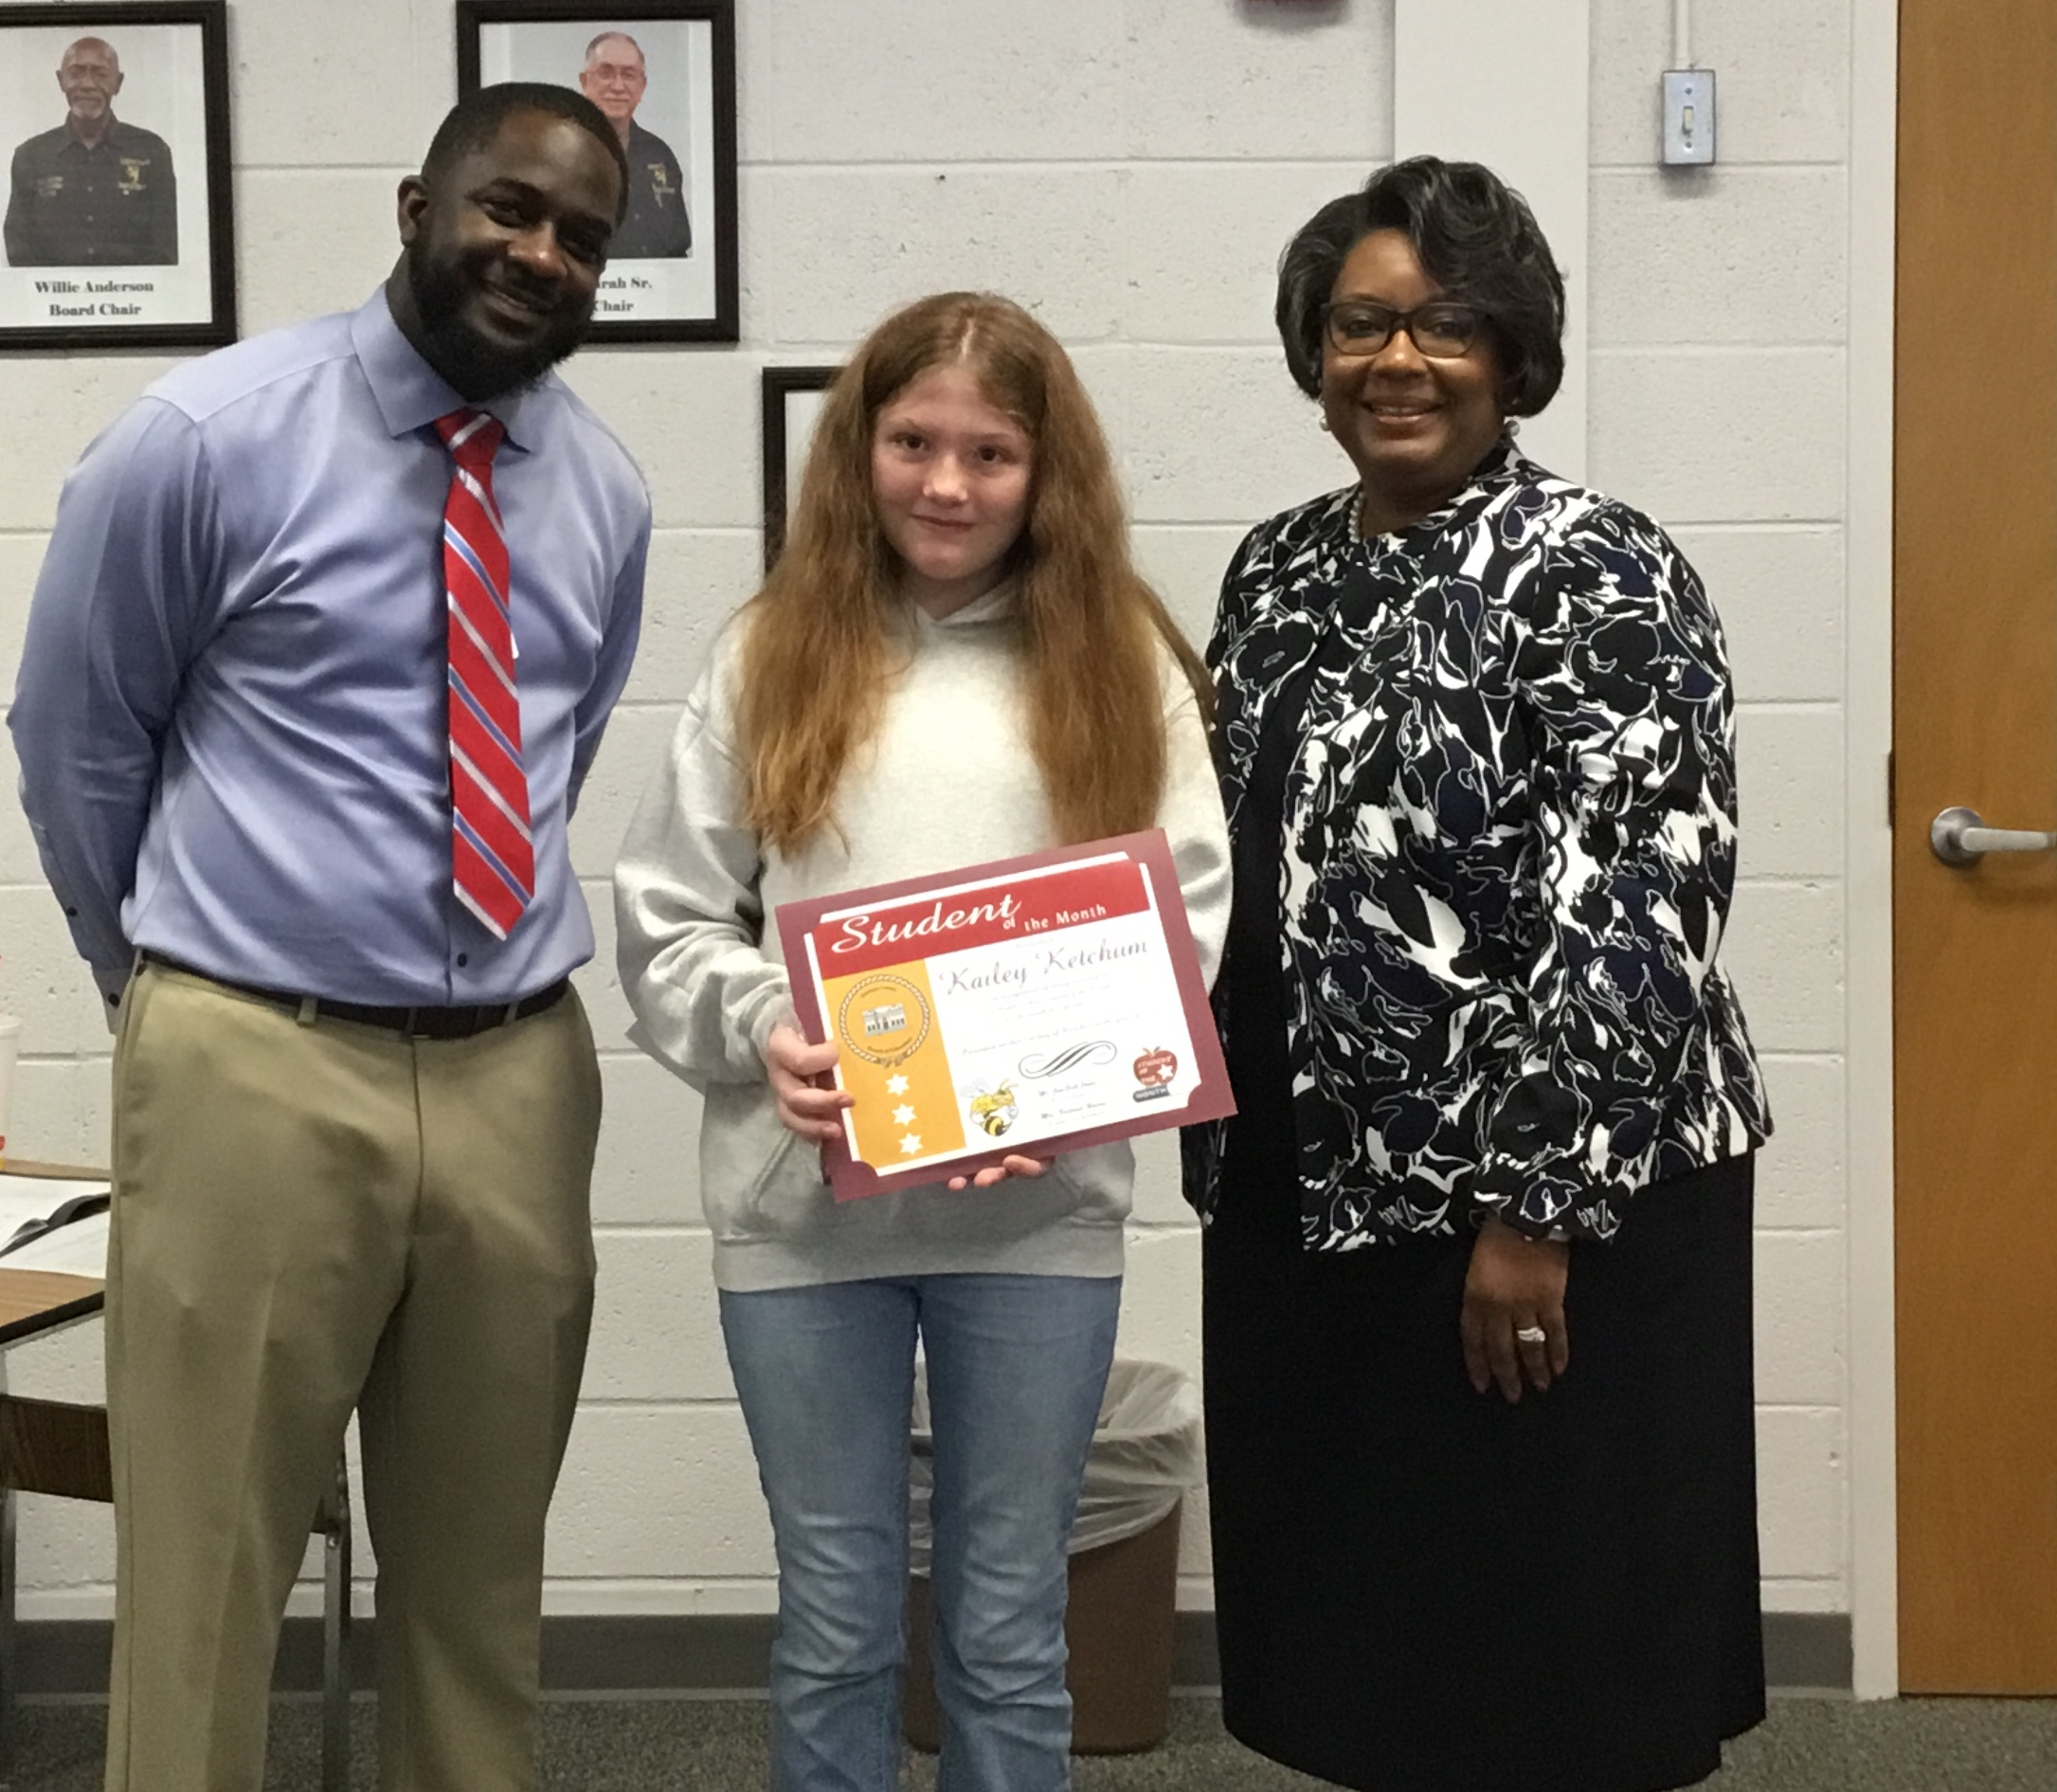 September 2019 MS Student of the Month - Kailey Ketchum